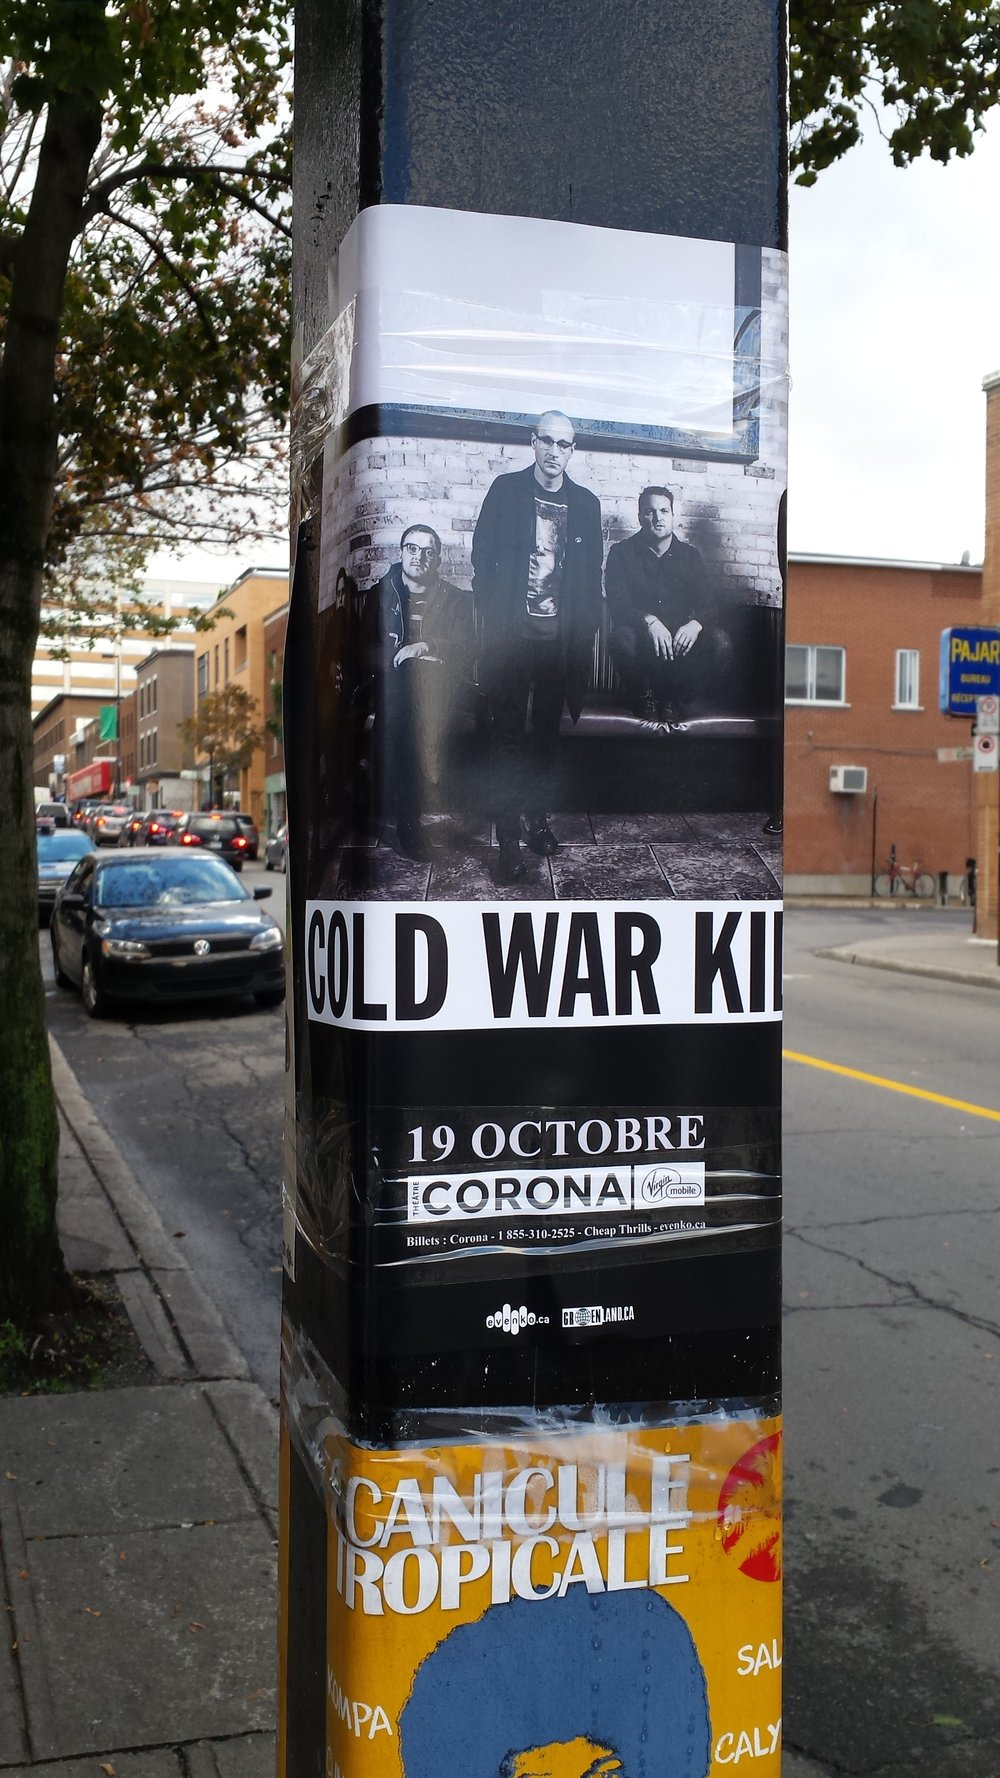 Cold war kids 4.jpg